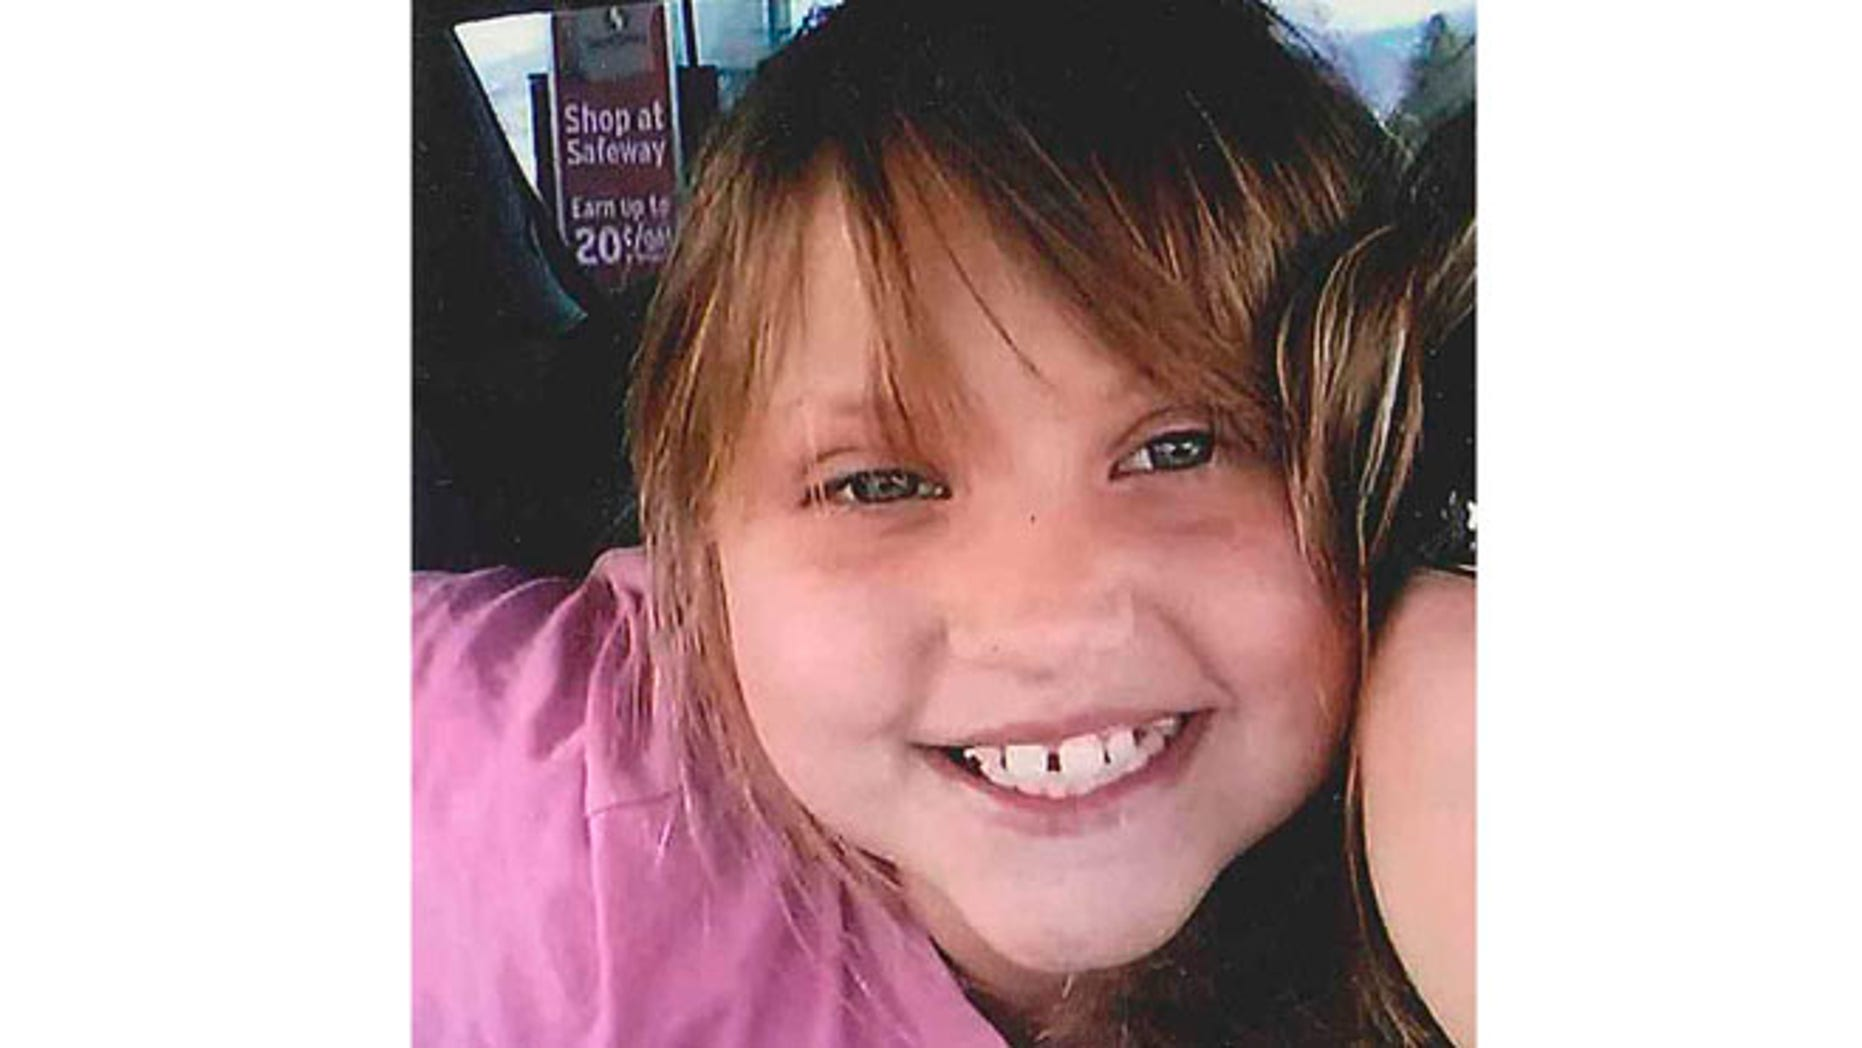 This undated file photo provided by the Bullhead City Police Department shows Isabella Bella Grogan-Cannella, an 8-year-old Bullhead City, Ariz., girl who was reported missing on Tuesday, Sept. 2, 2014.